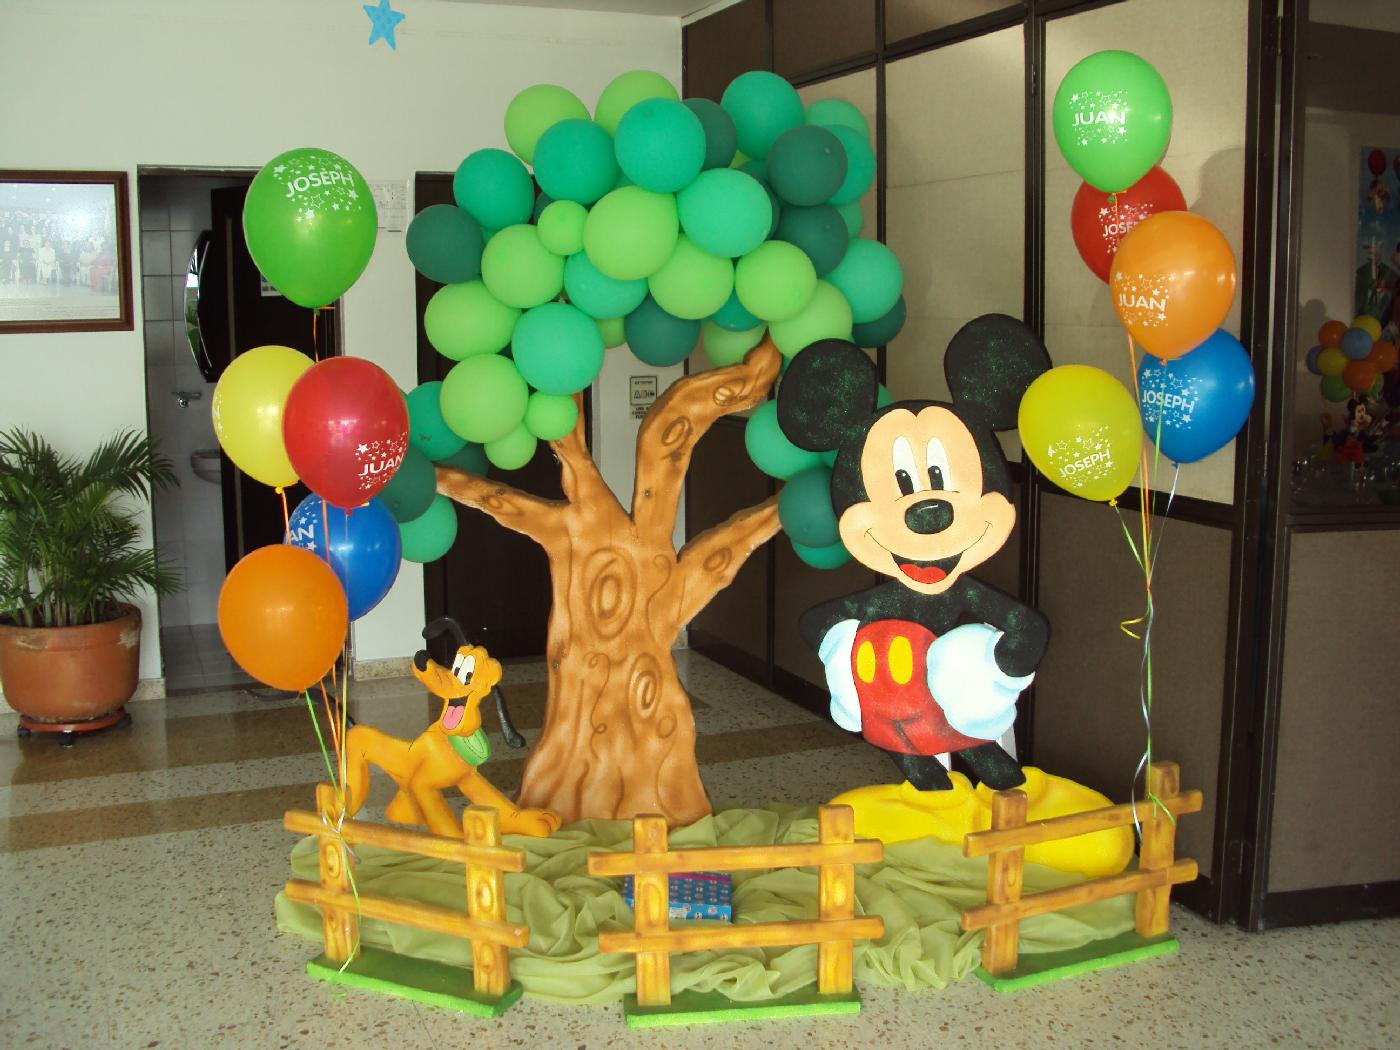 Decoraci n mickey mouse fiesta infantil imagui for Decoracion la casa de mickey mouse